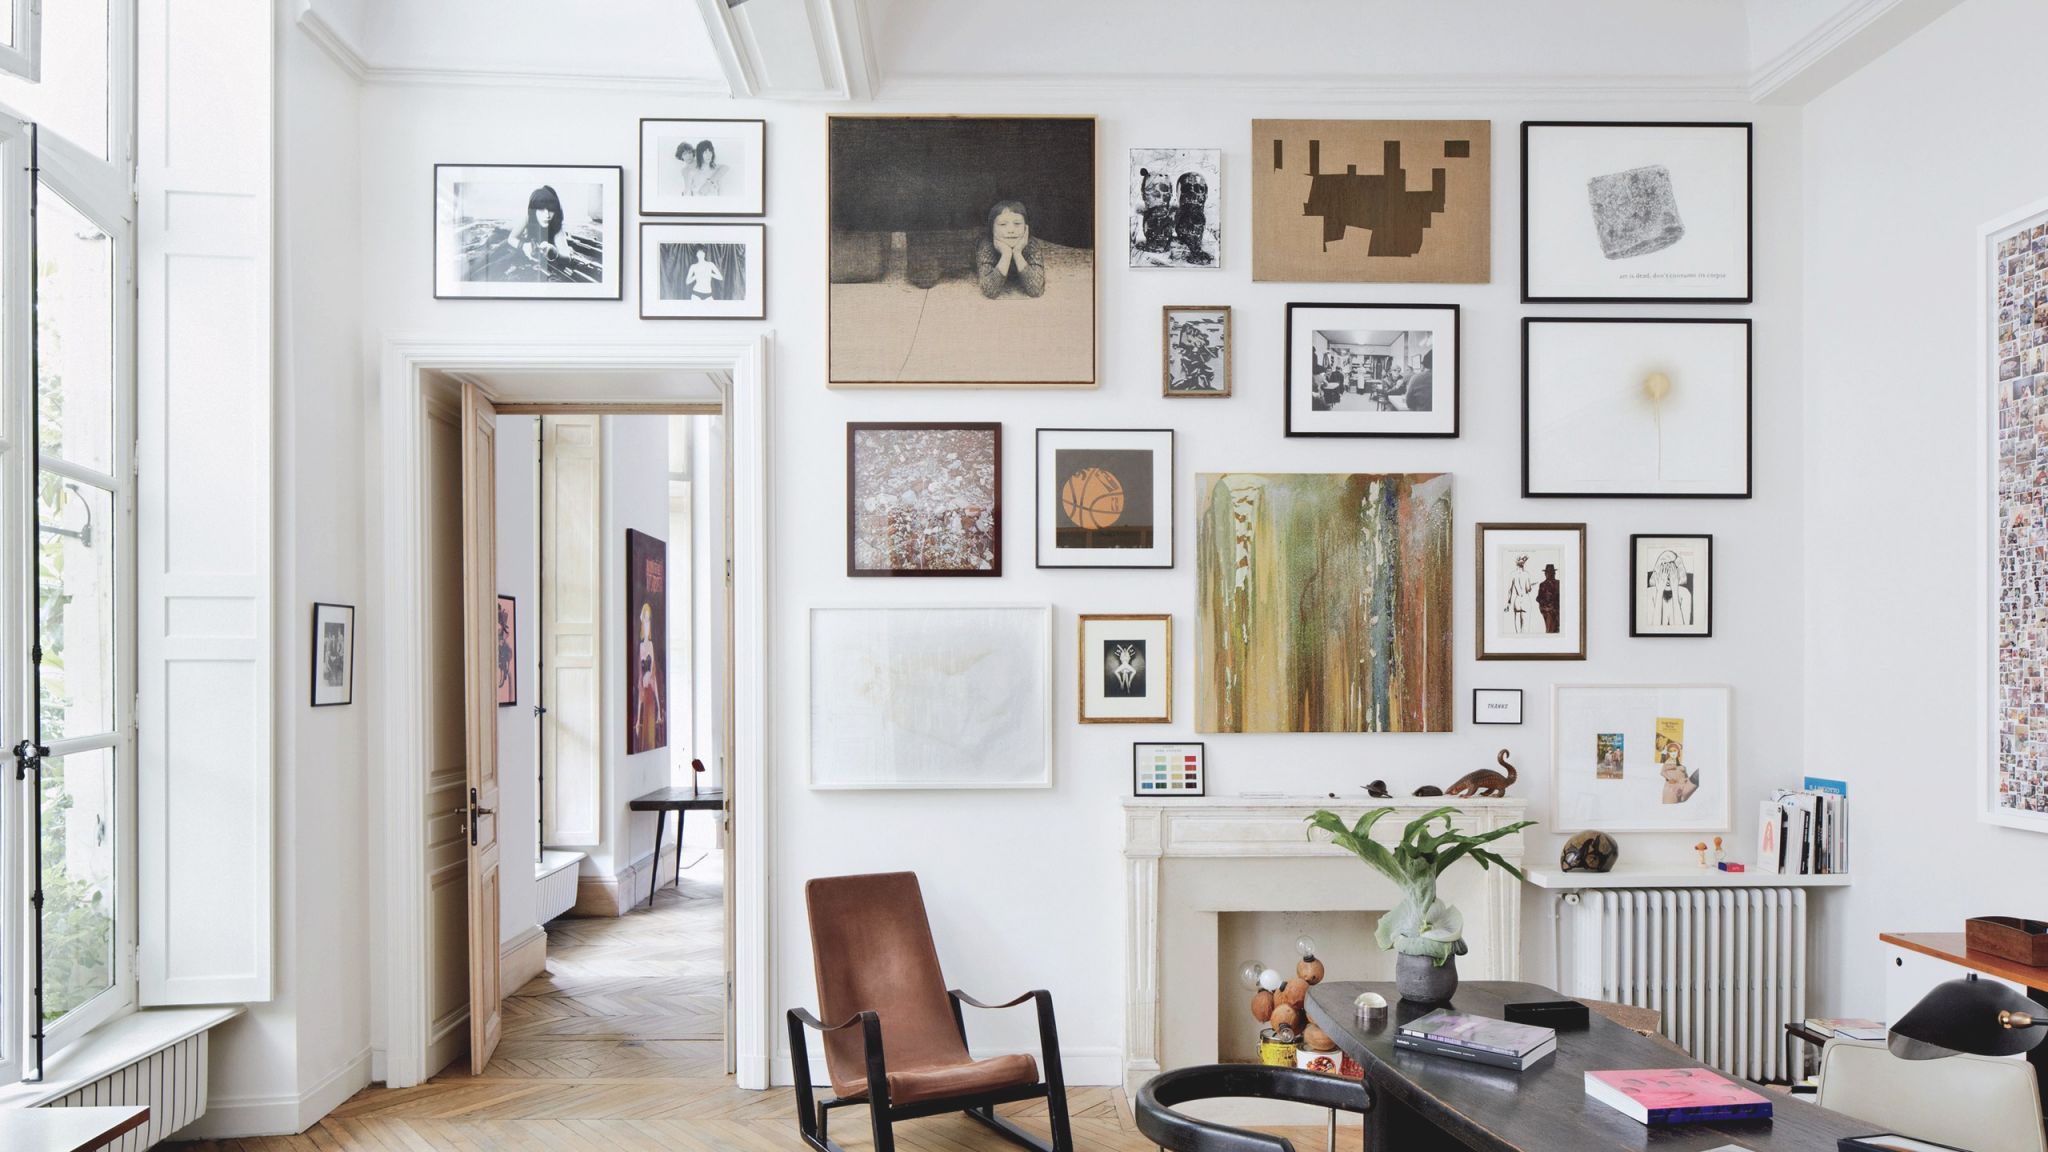 20 Wall Decor Ideas To Refresh Your Space | Architectural Digest with regard to Awesome Wall Decor Ideas For Living Room